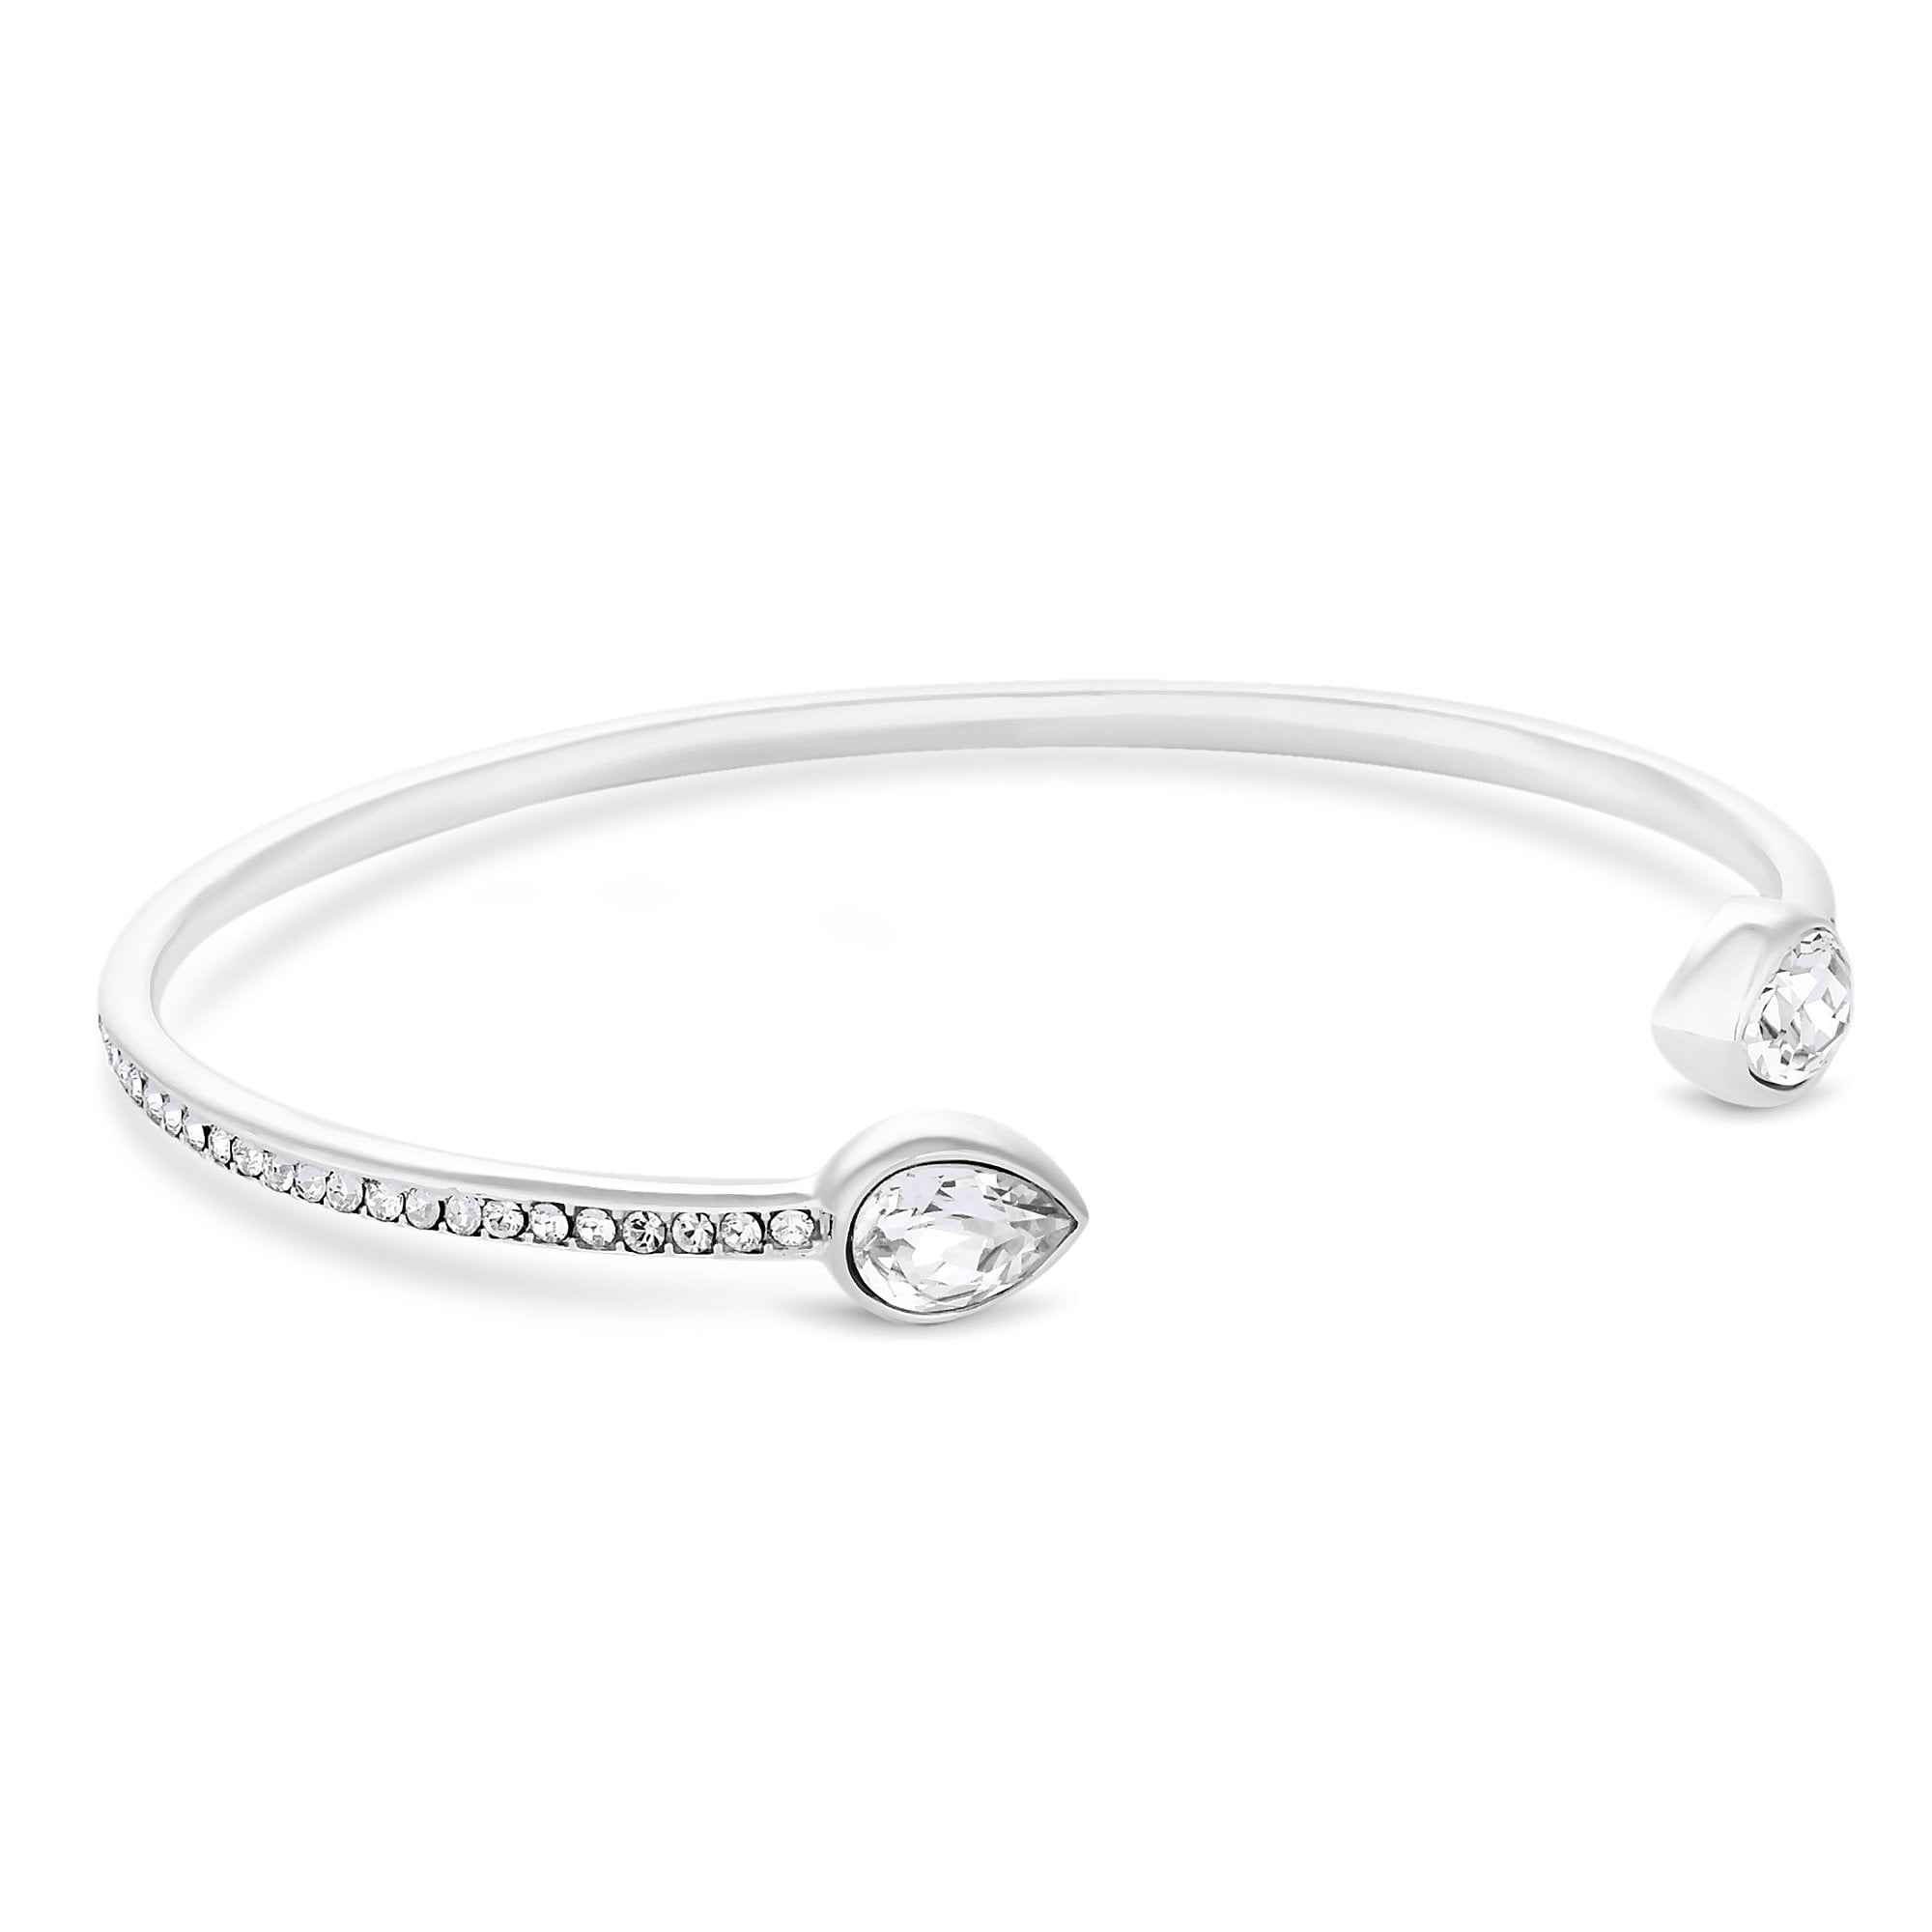 099ac90a3d75 Simply Silver Sterling Silver 925 White Pear Cut Cuff Bracelet Embellished  With Swarovski® Crystals